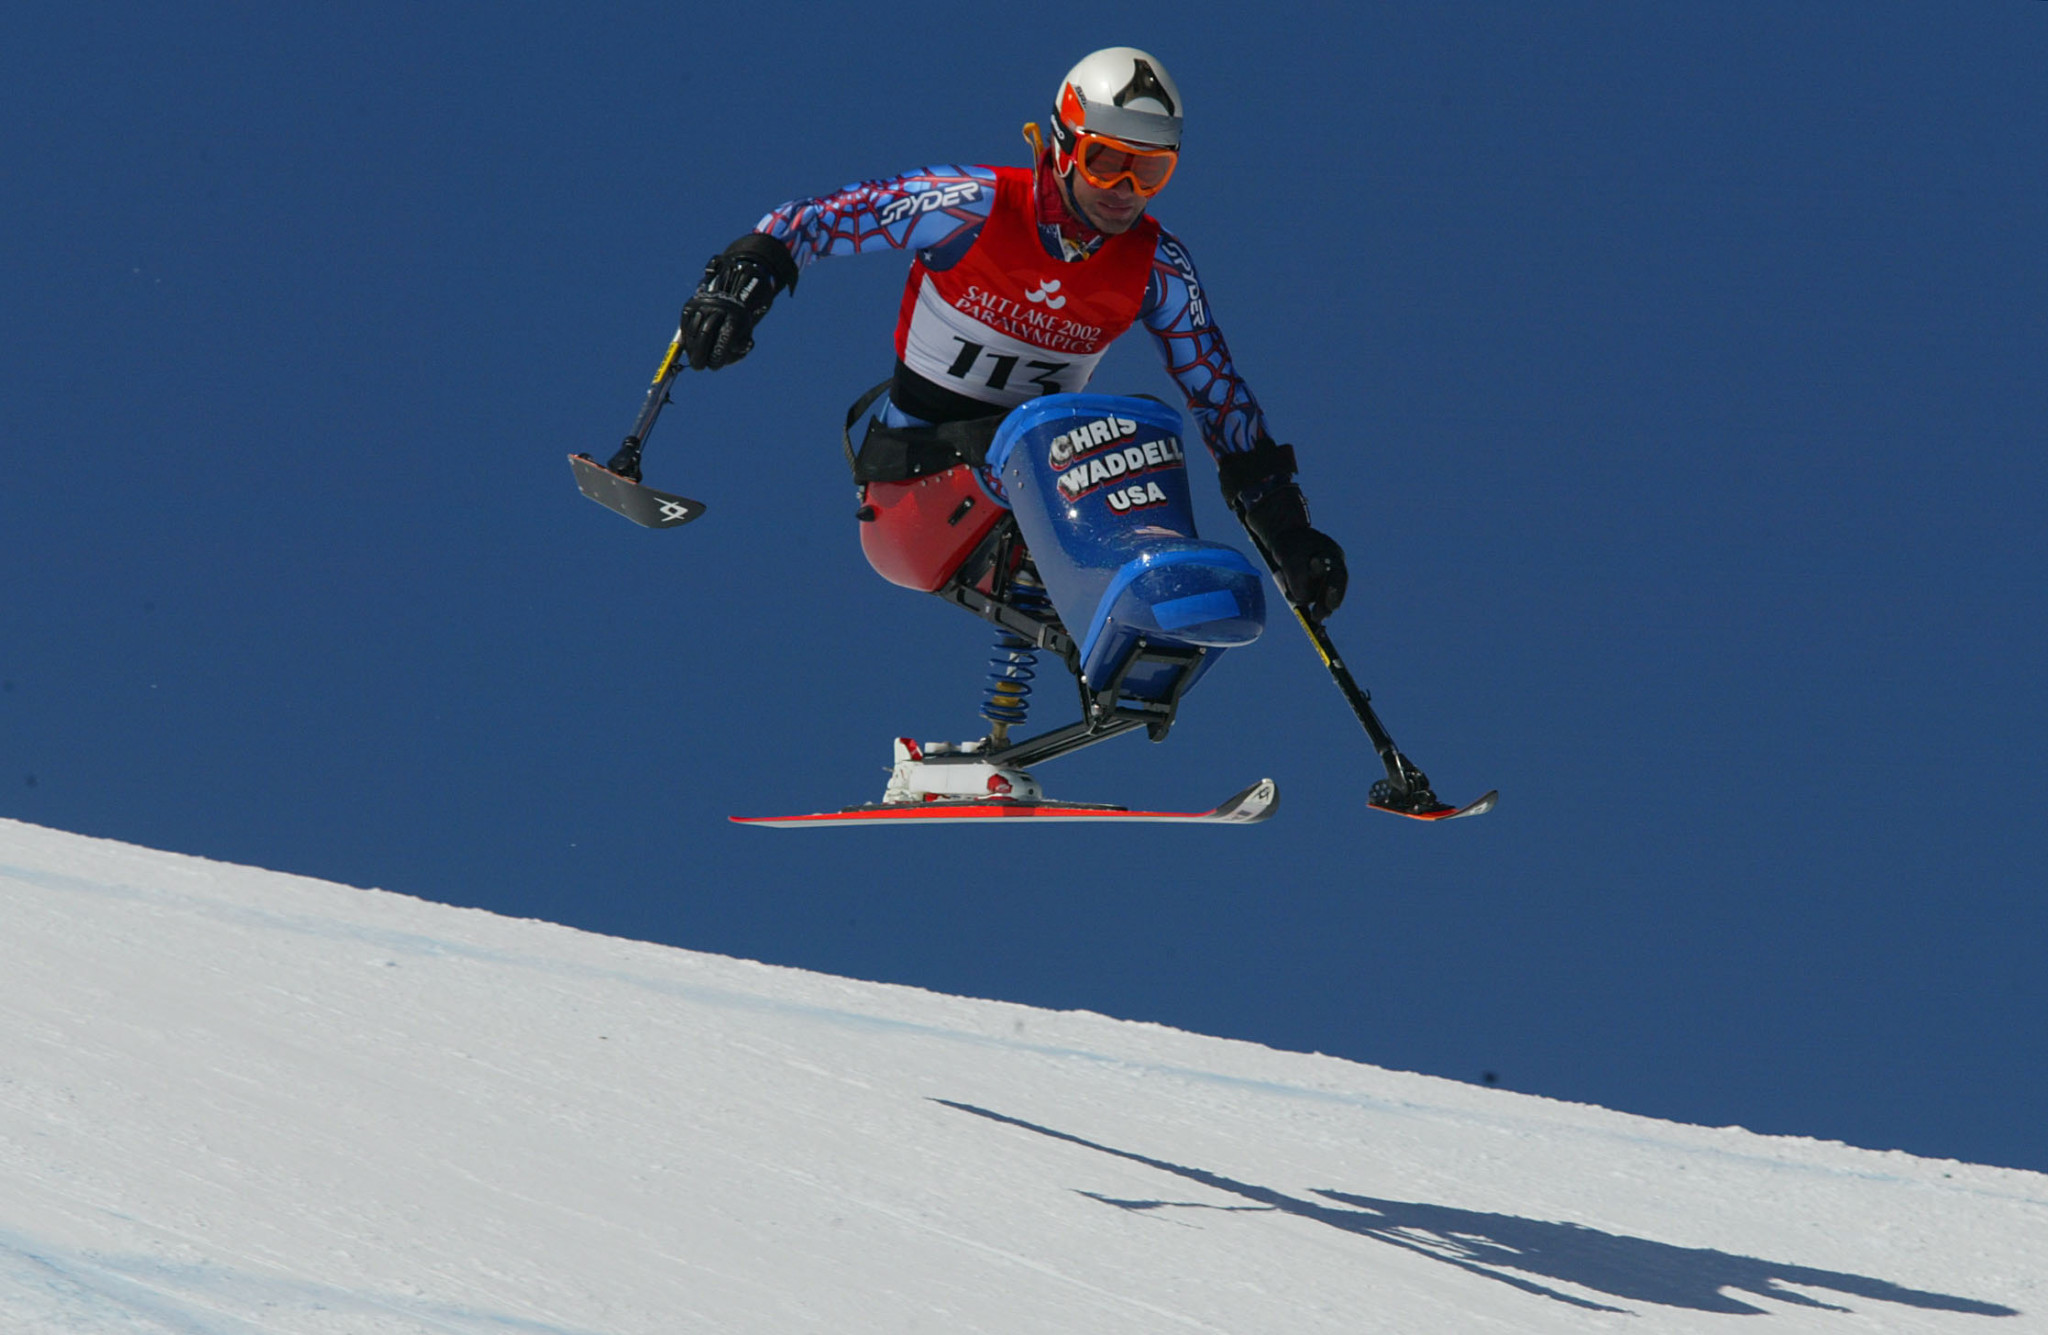 Chris Waddell won three medals at teh Salt Lake City 2002 Winter Paralympics ©Getty Images